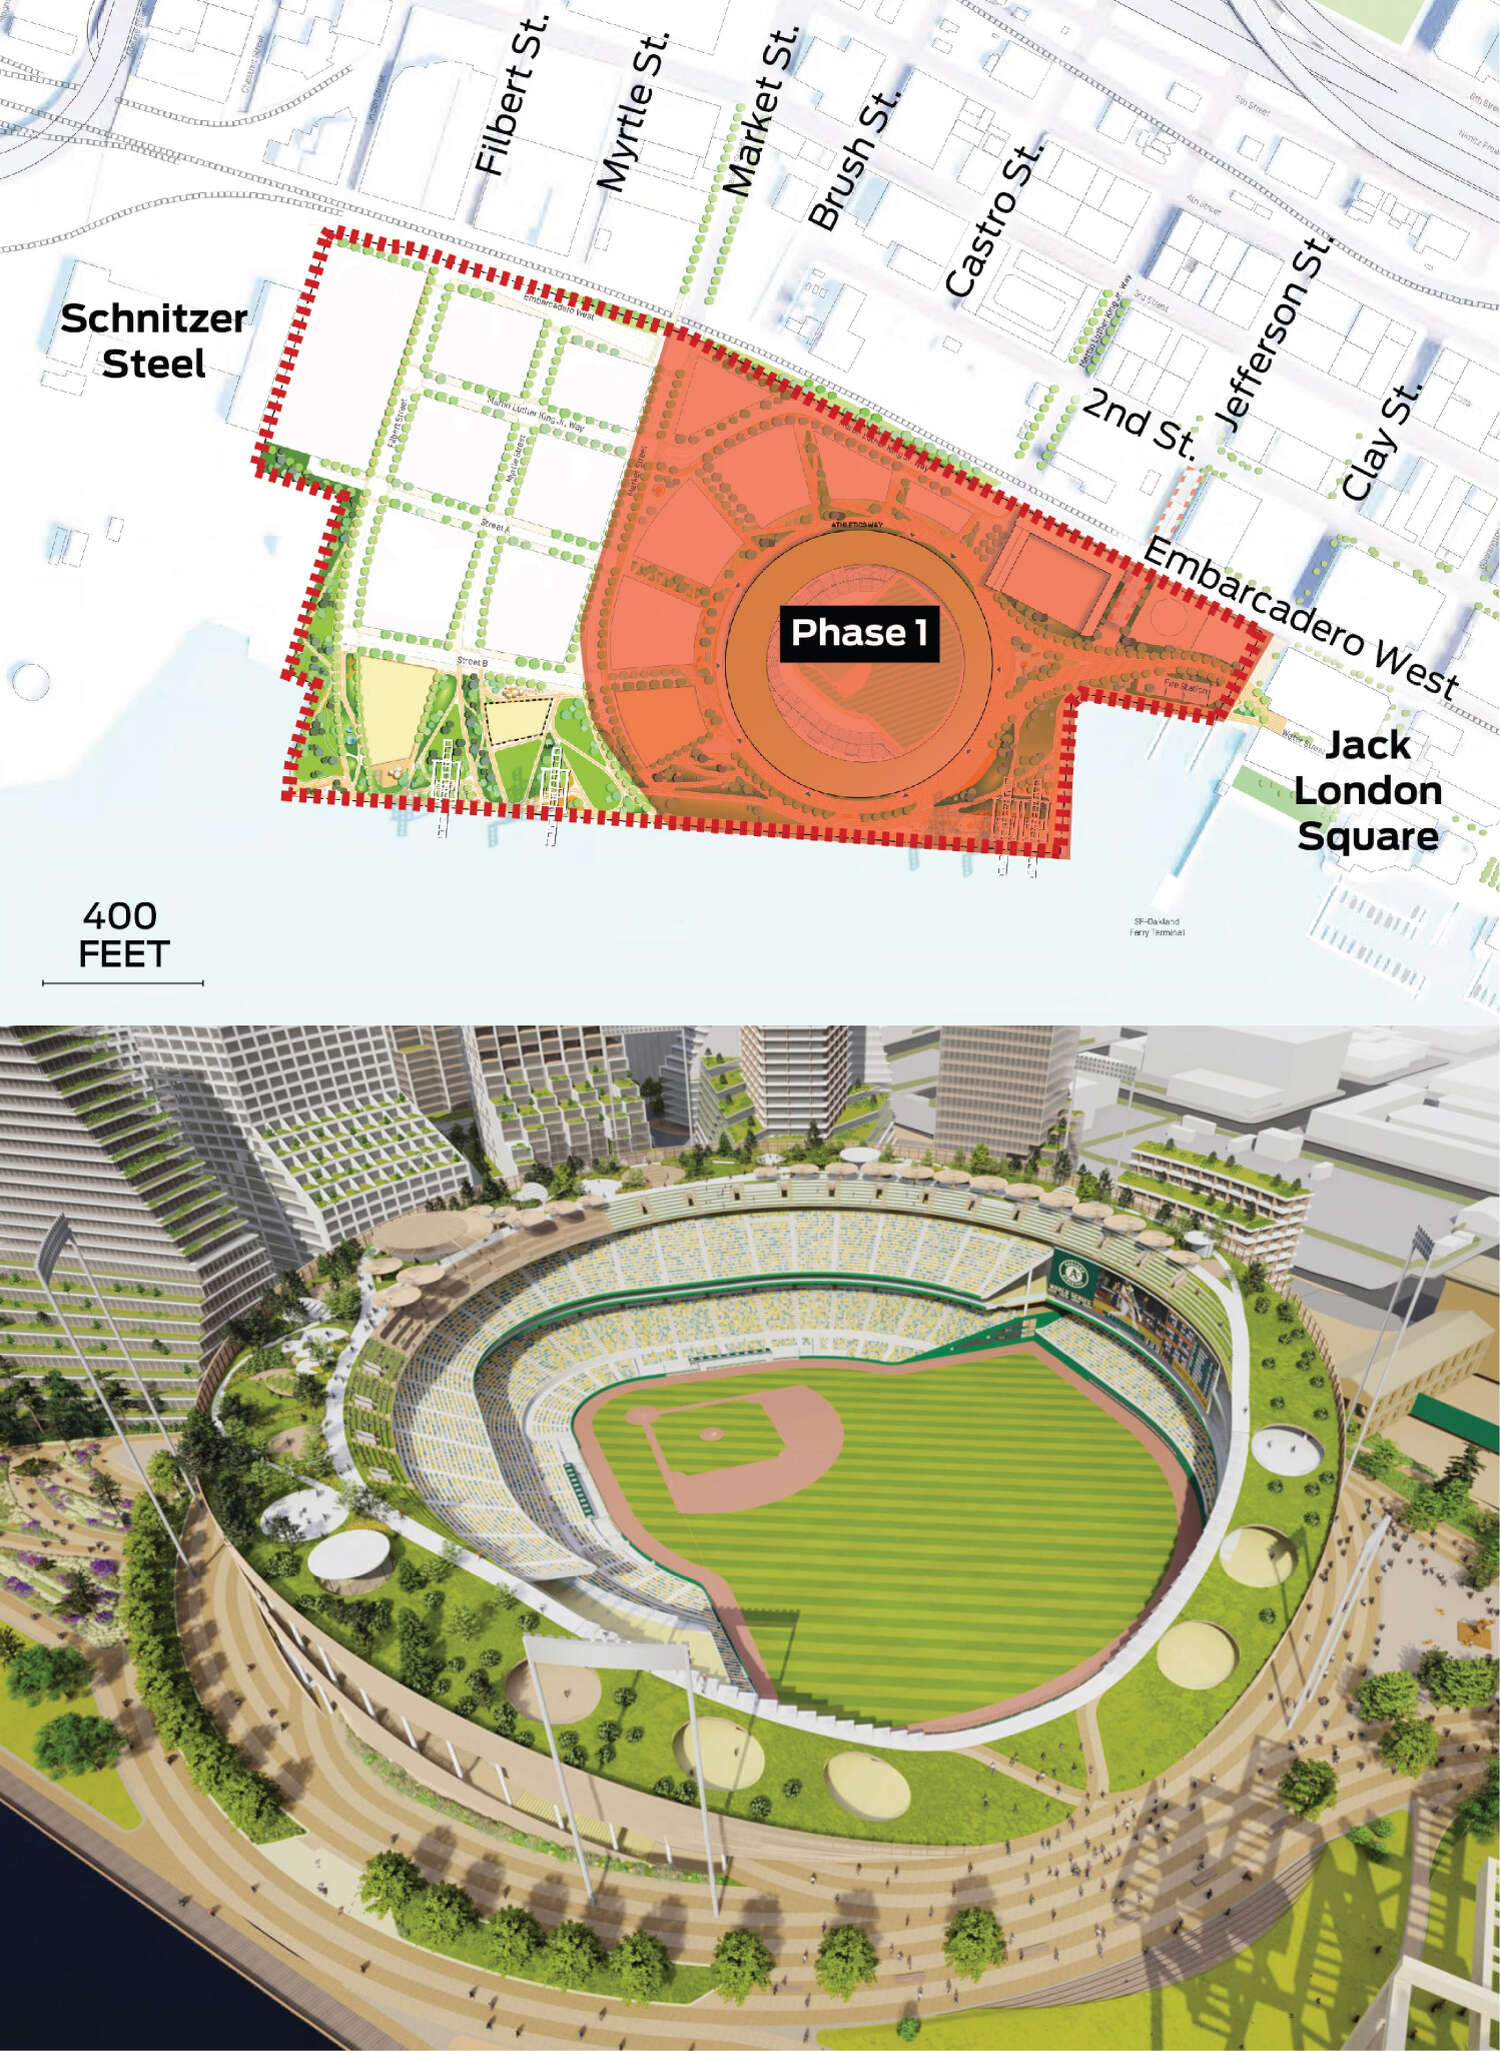 The area east of Market Street is highlighted as phase 1. A rendering focused on the ballpark is displayed.